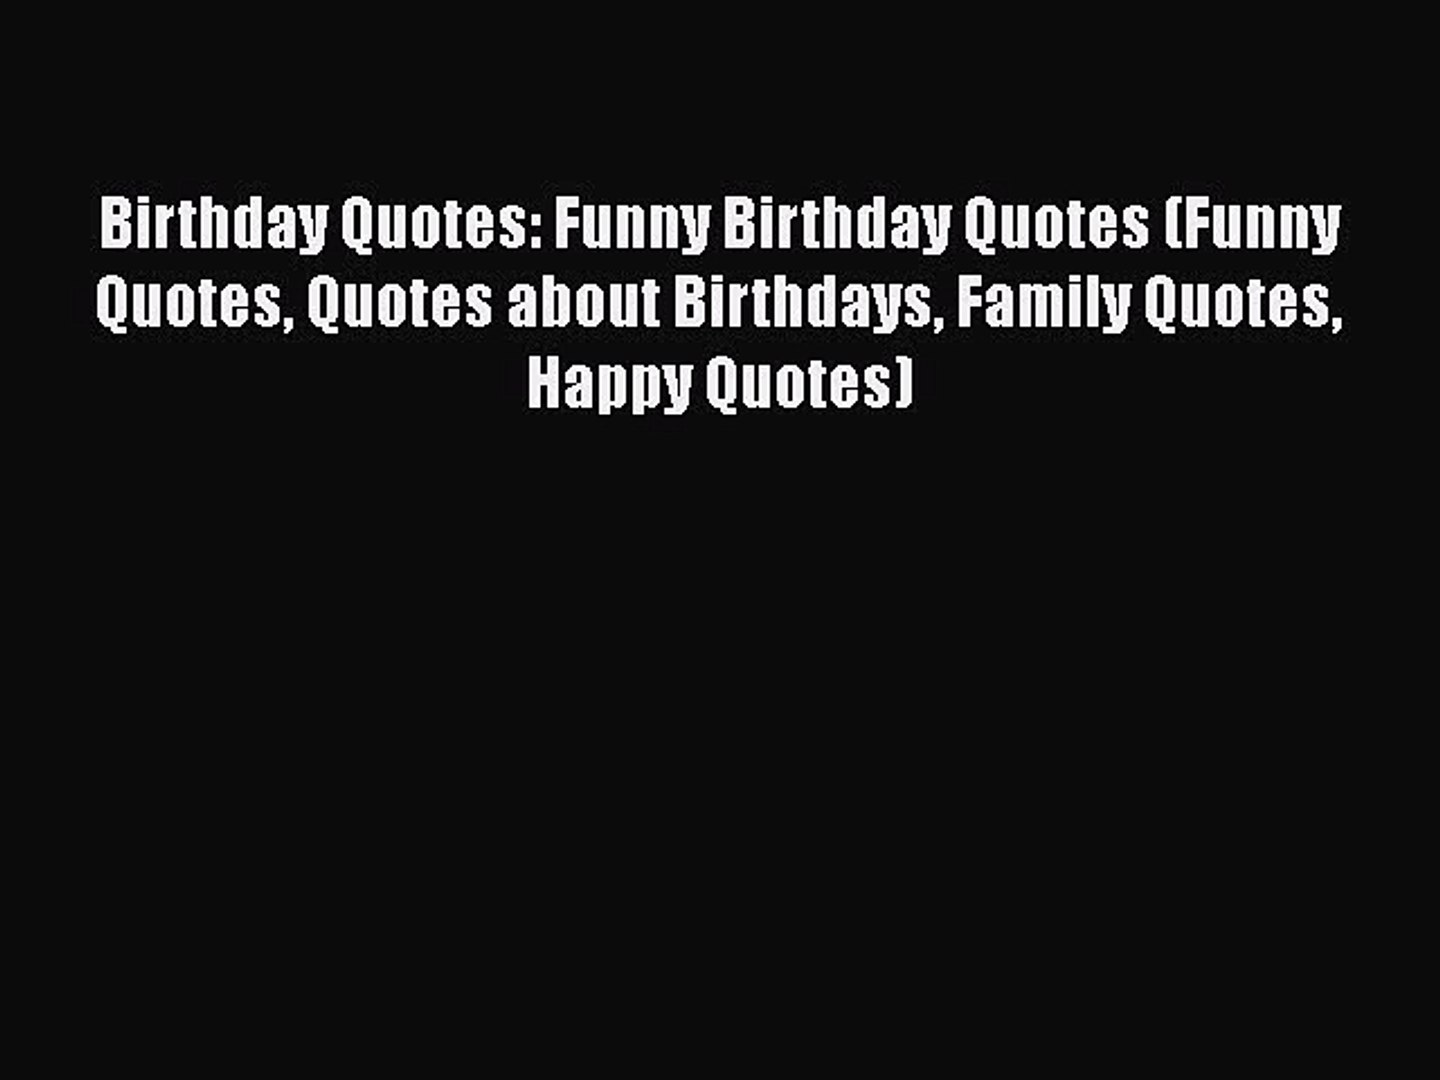 Download Birthday Quotes: Funny Birthday Quotes (Funny Quotes Quotes about  Birthdays Family